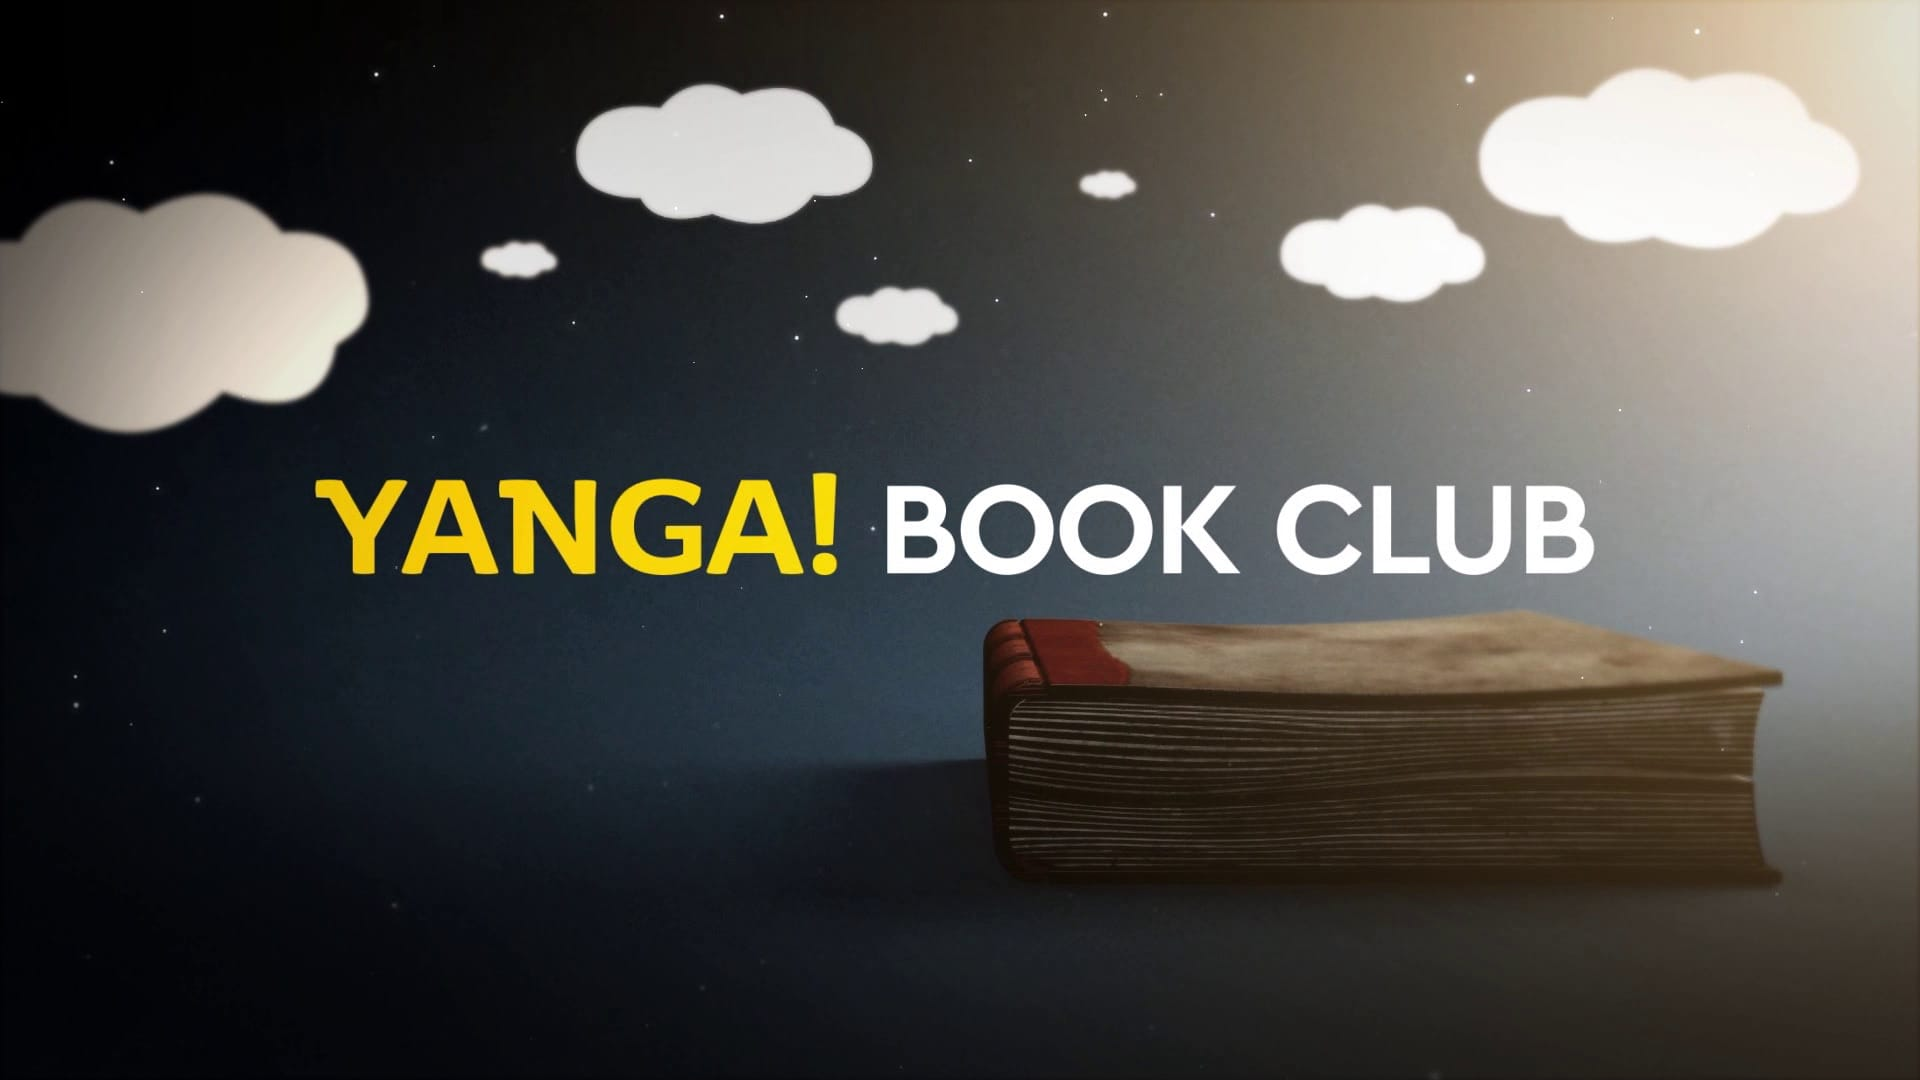 YANGA! Book Club